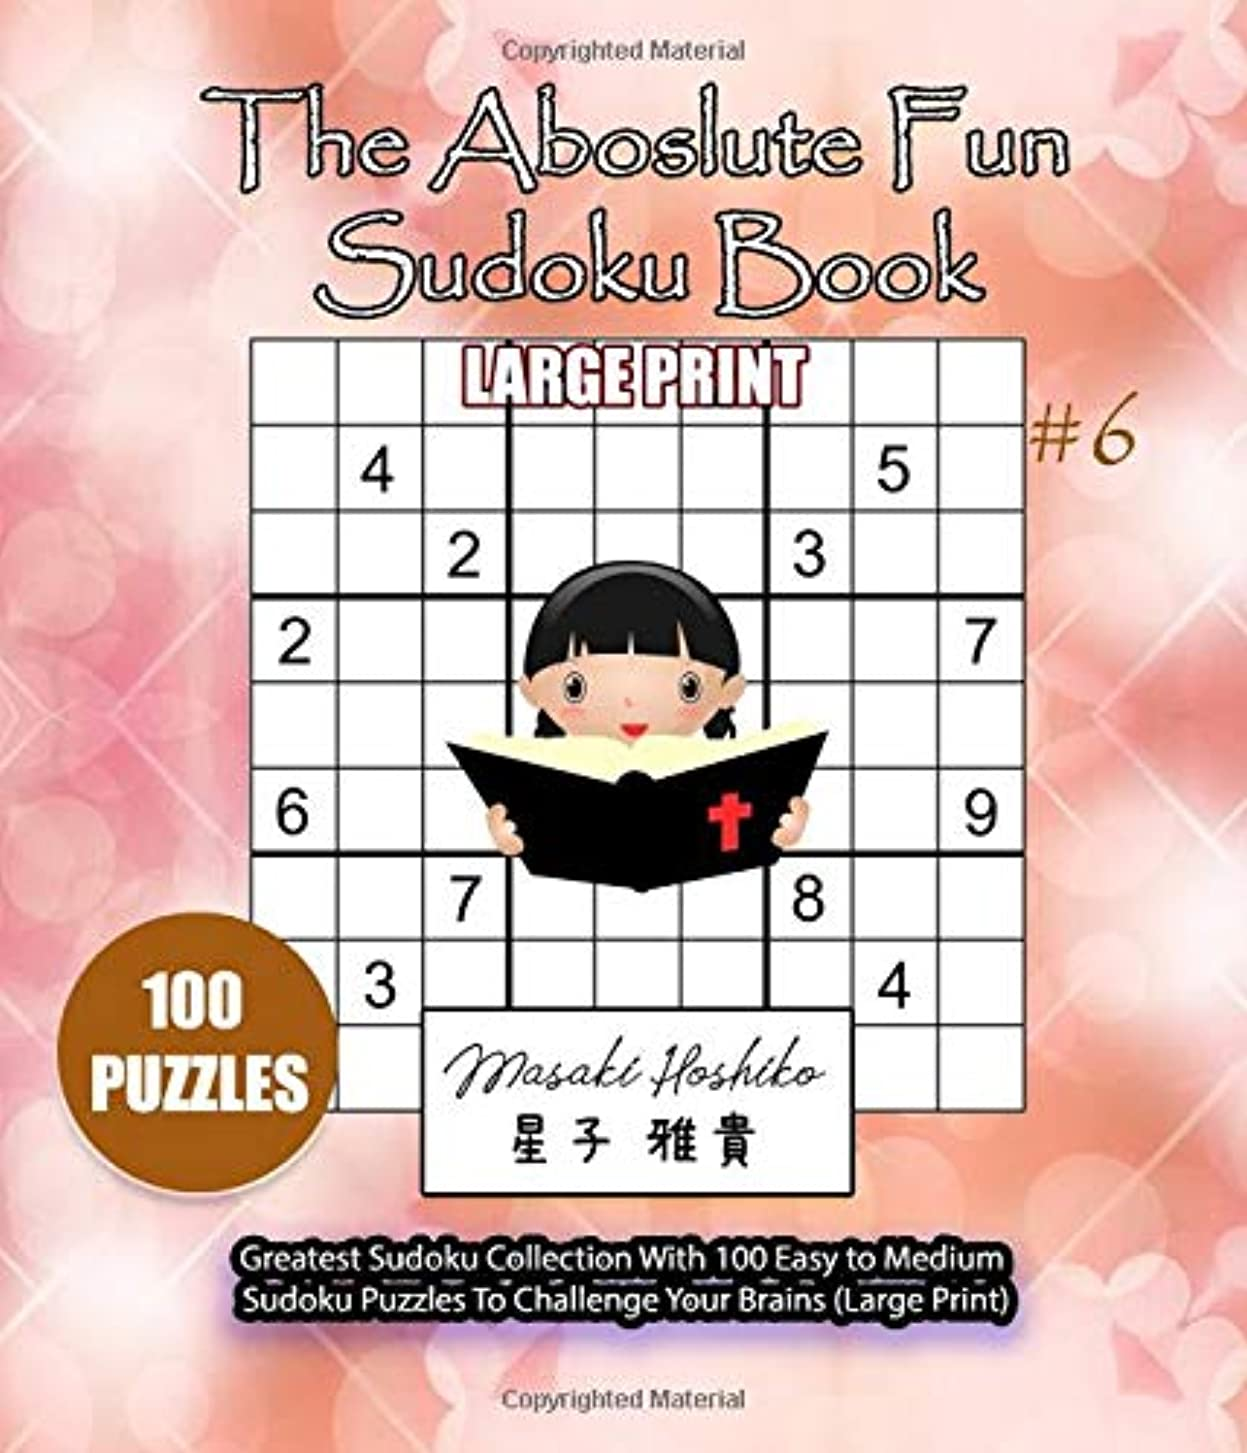 The Aboslute Fun Sudoku Book #6: Greatest Sudoku Collection With 100 Easy to Medium Sudoku Puzzles To Challenge Your Brains (Large Print)